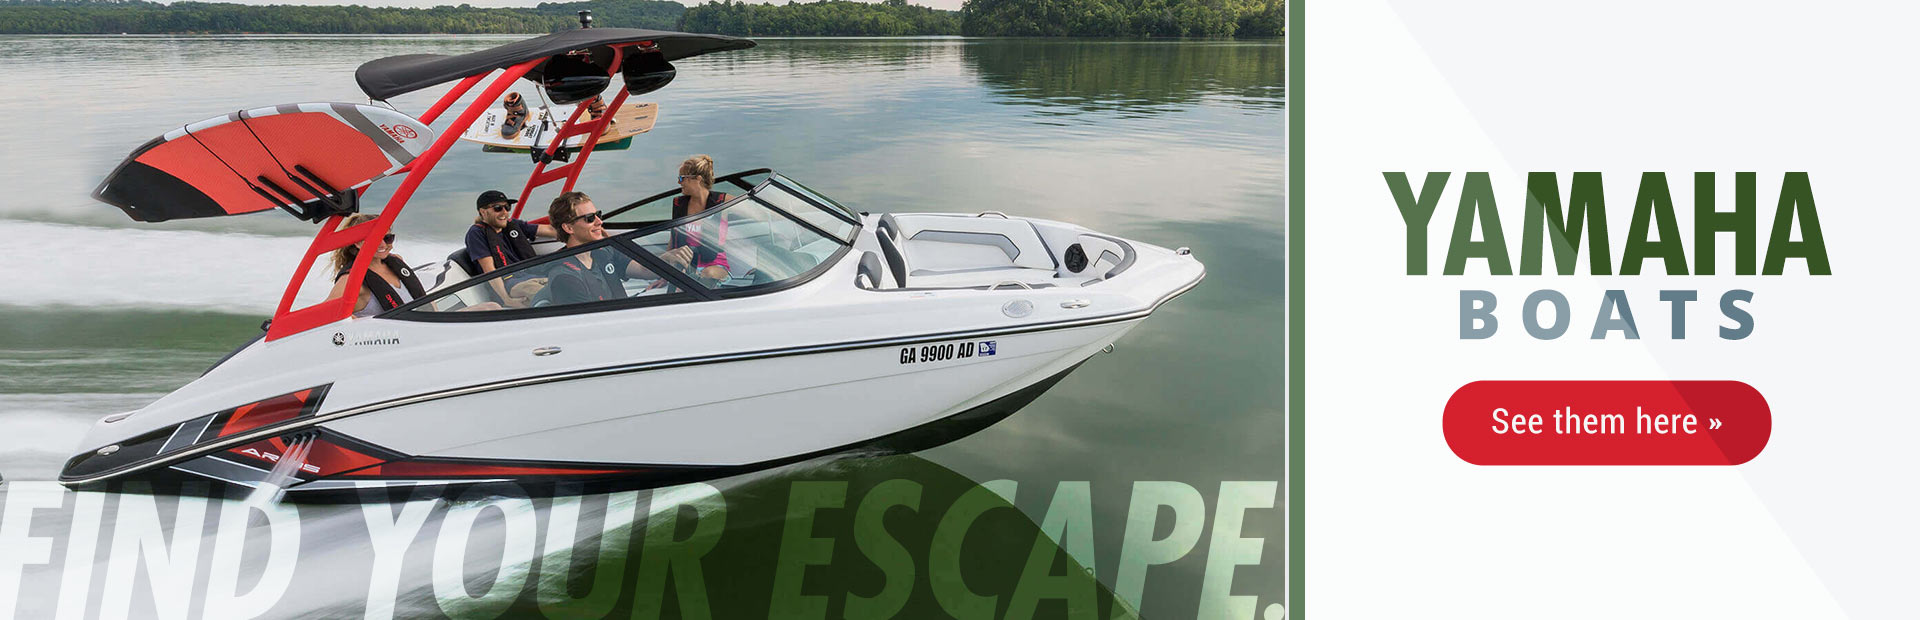 We sell and service boats including Bayliner, Yamaha Jet